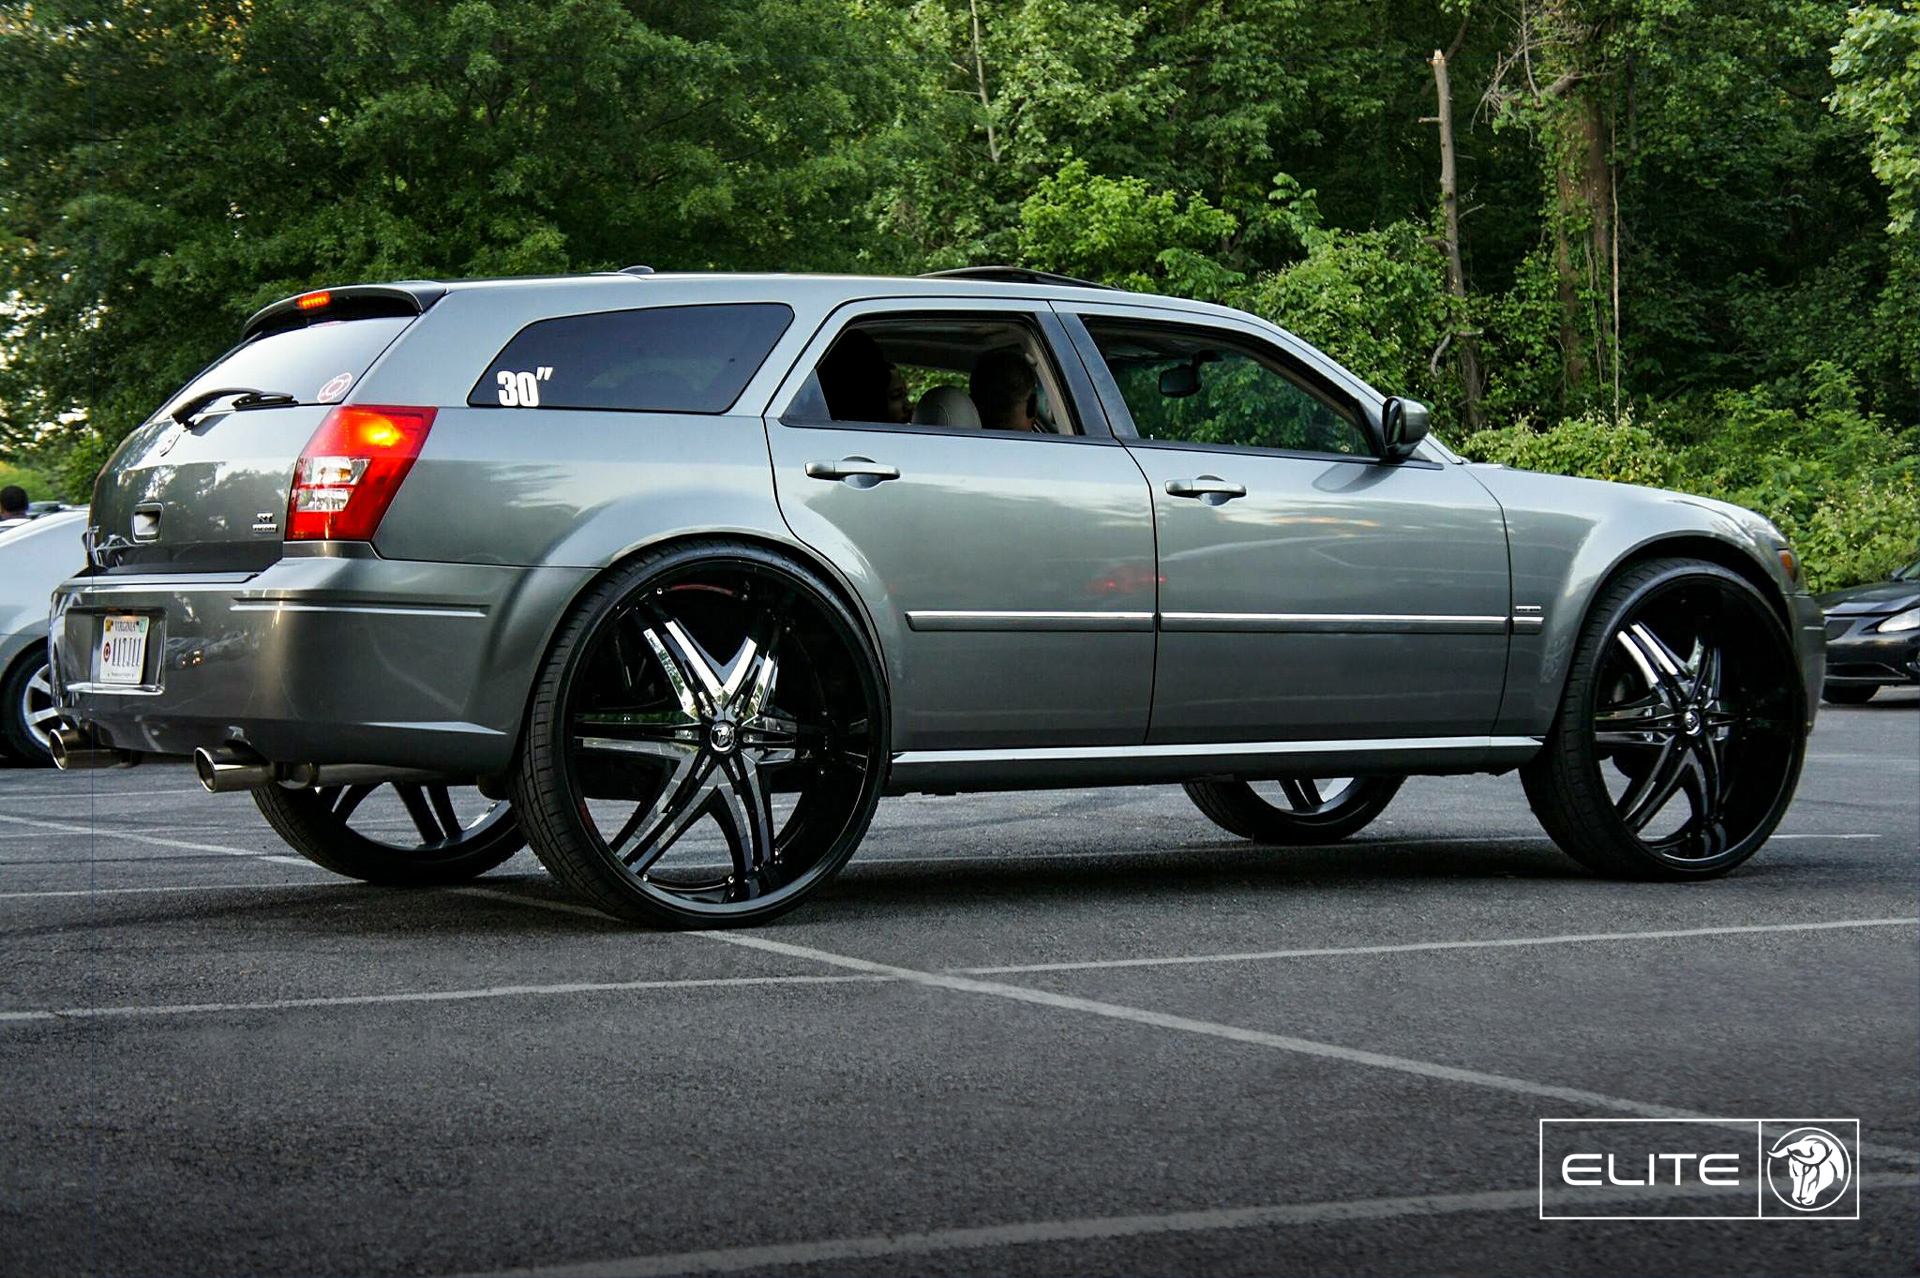 Diablo Wheels - Elite on a Dodge Magnum